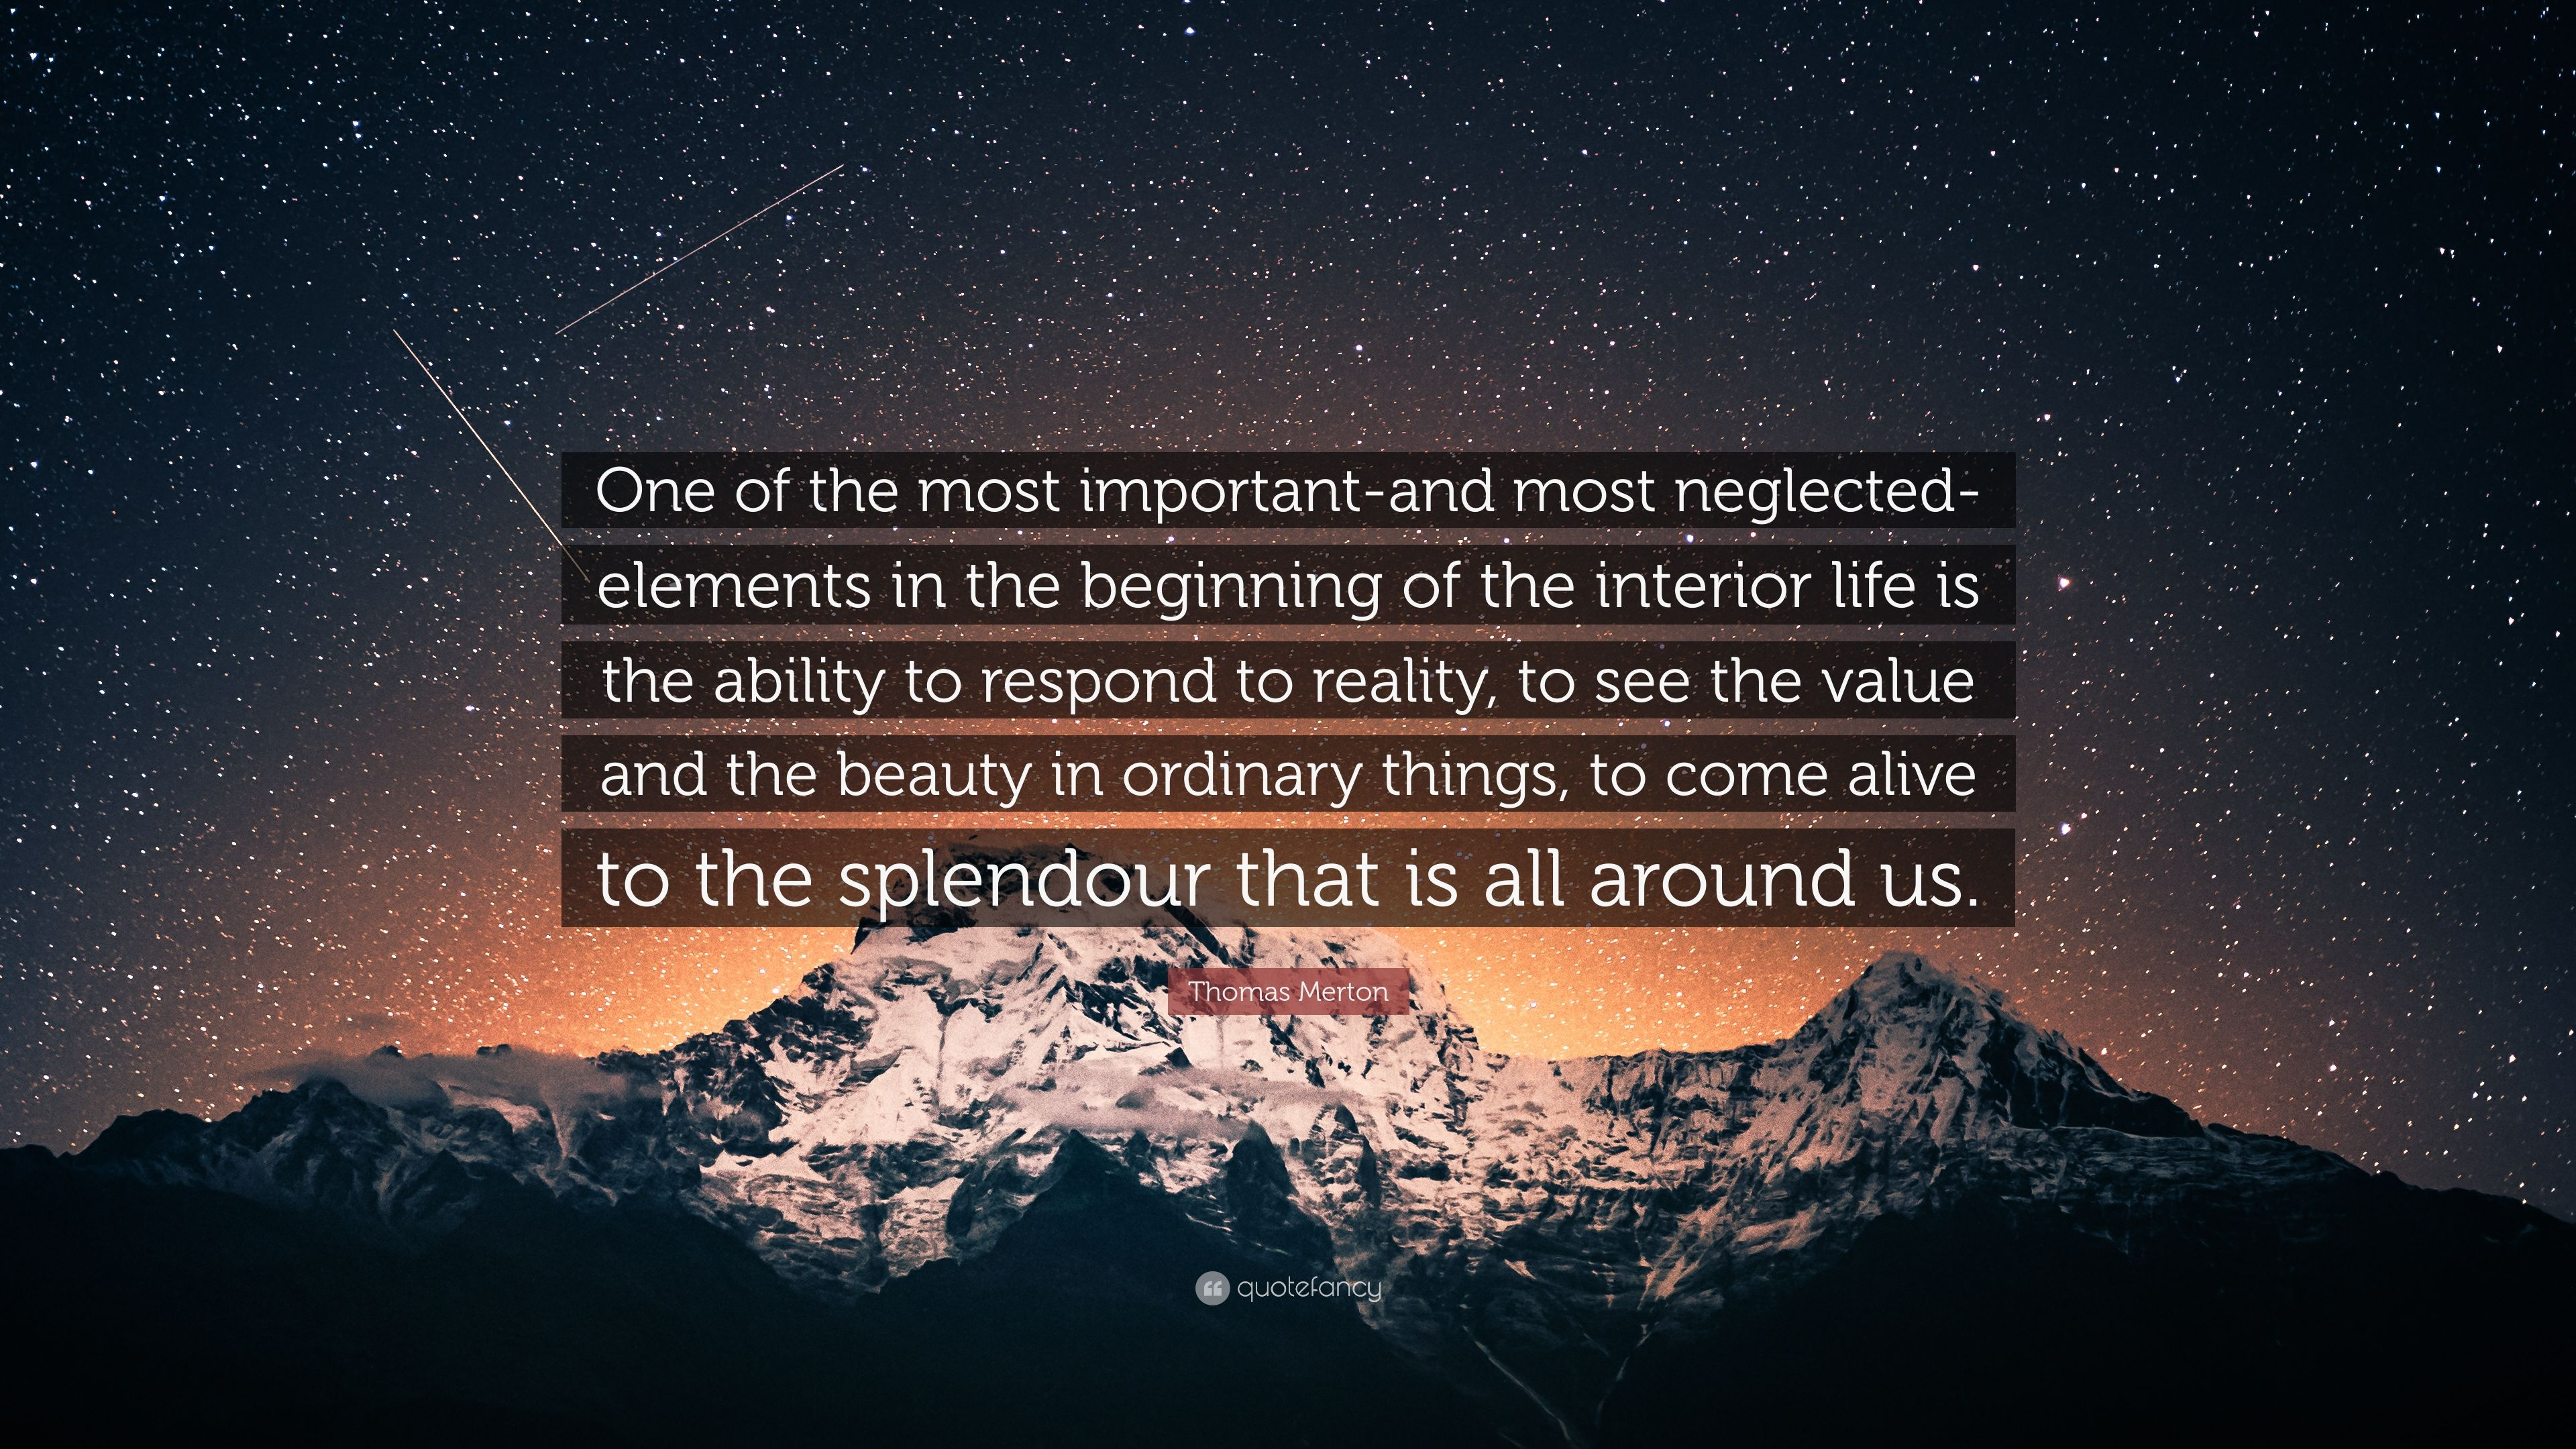 Image result for One of the most important—and most neglected—elements in the beginnings of the interior life is the ability to respond to reality, to see the value and the beauty in ordinary things, to come alive to the splendor that is all around us.